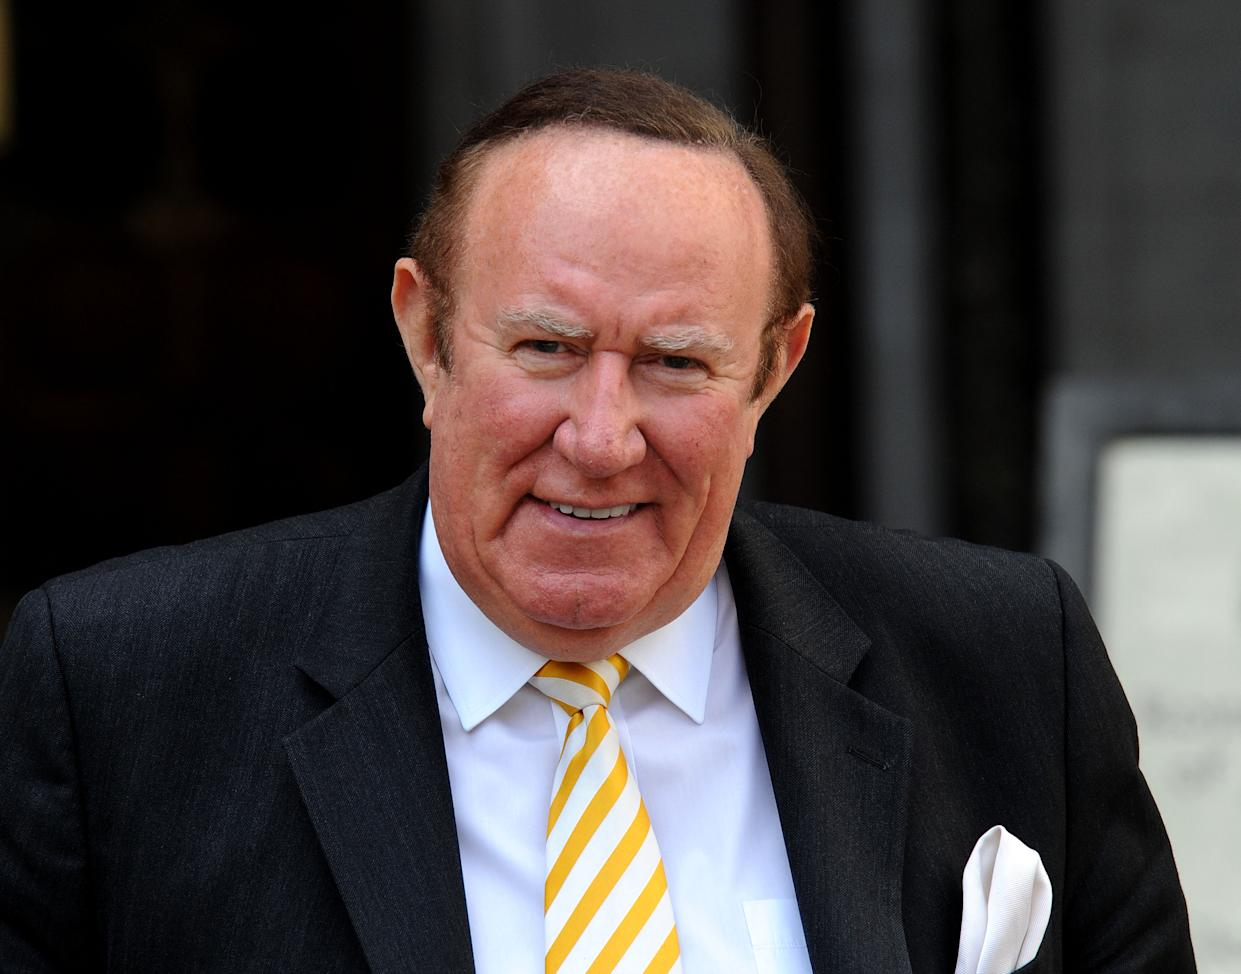 """File photo dated 27/06/2016 of Andrew Neil who has said there were times he was """"unhappy"""" at the BBC, but that he is not out to """"seek revenge"""" as he leaves to help launch GB News."""